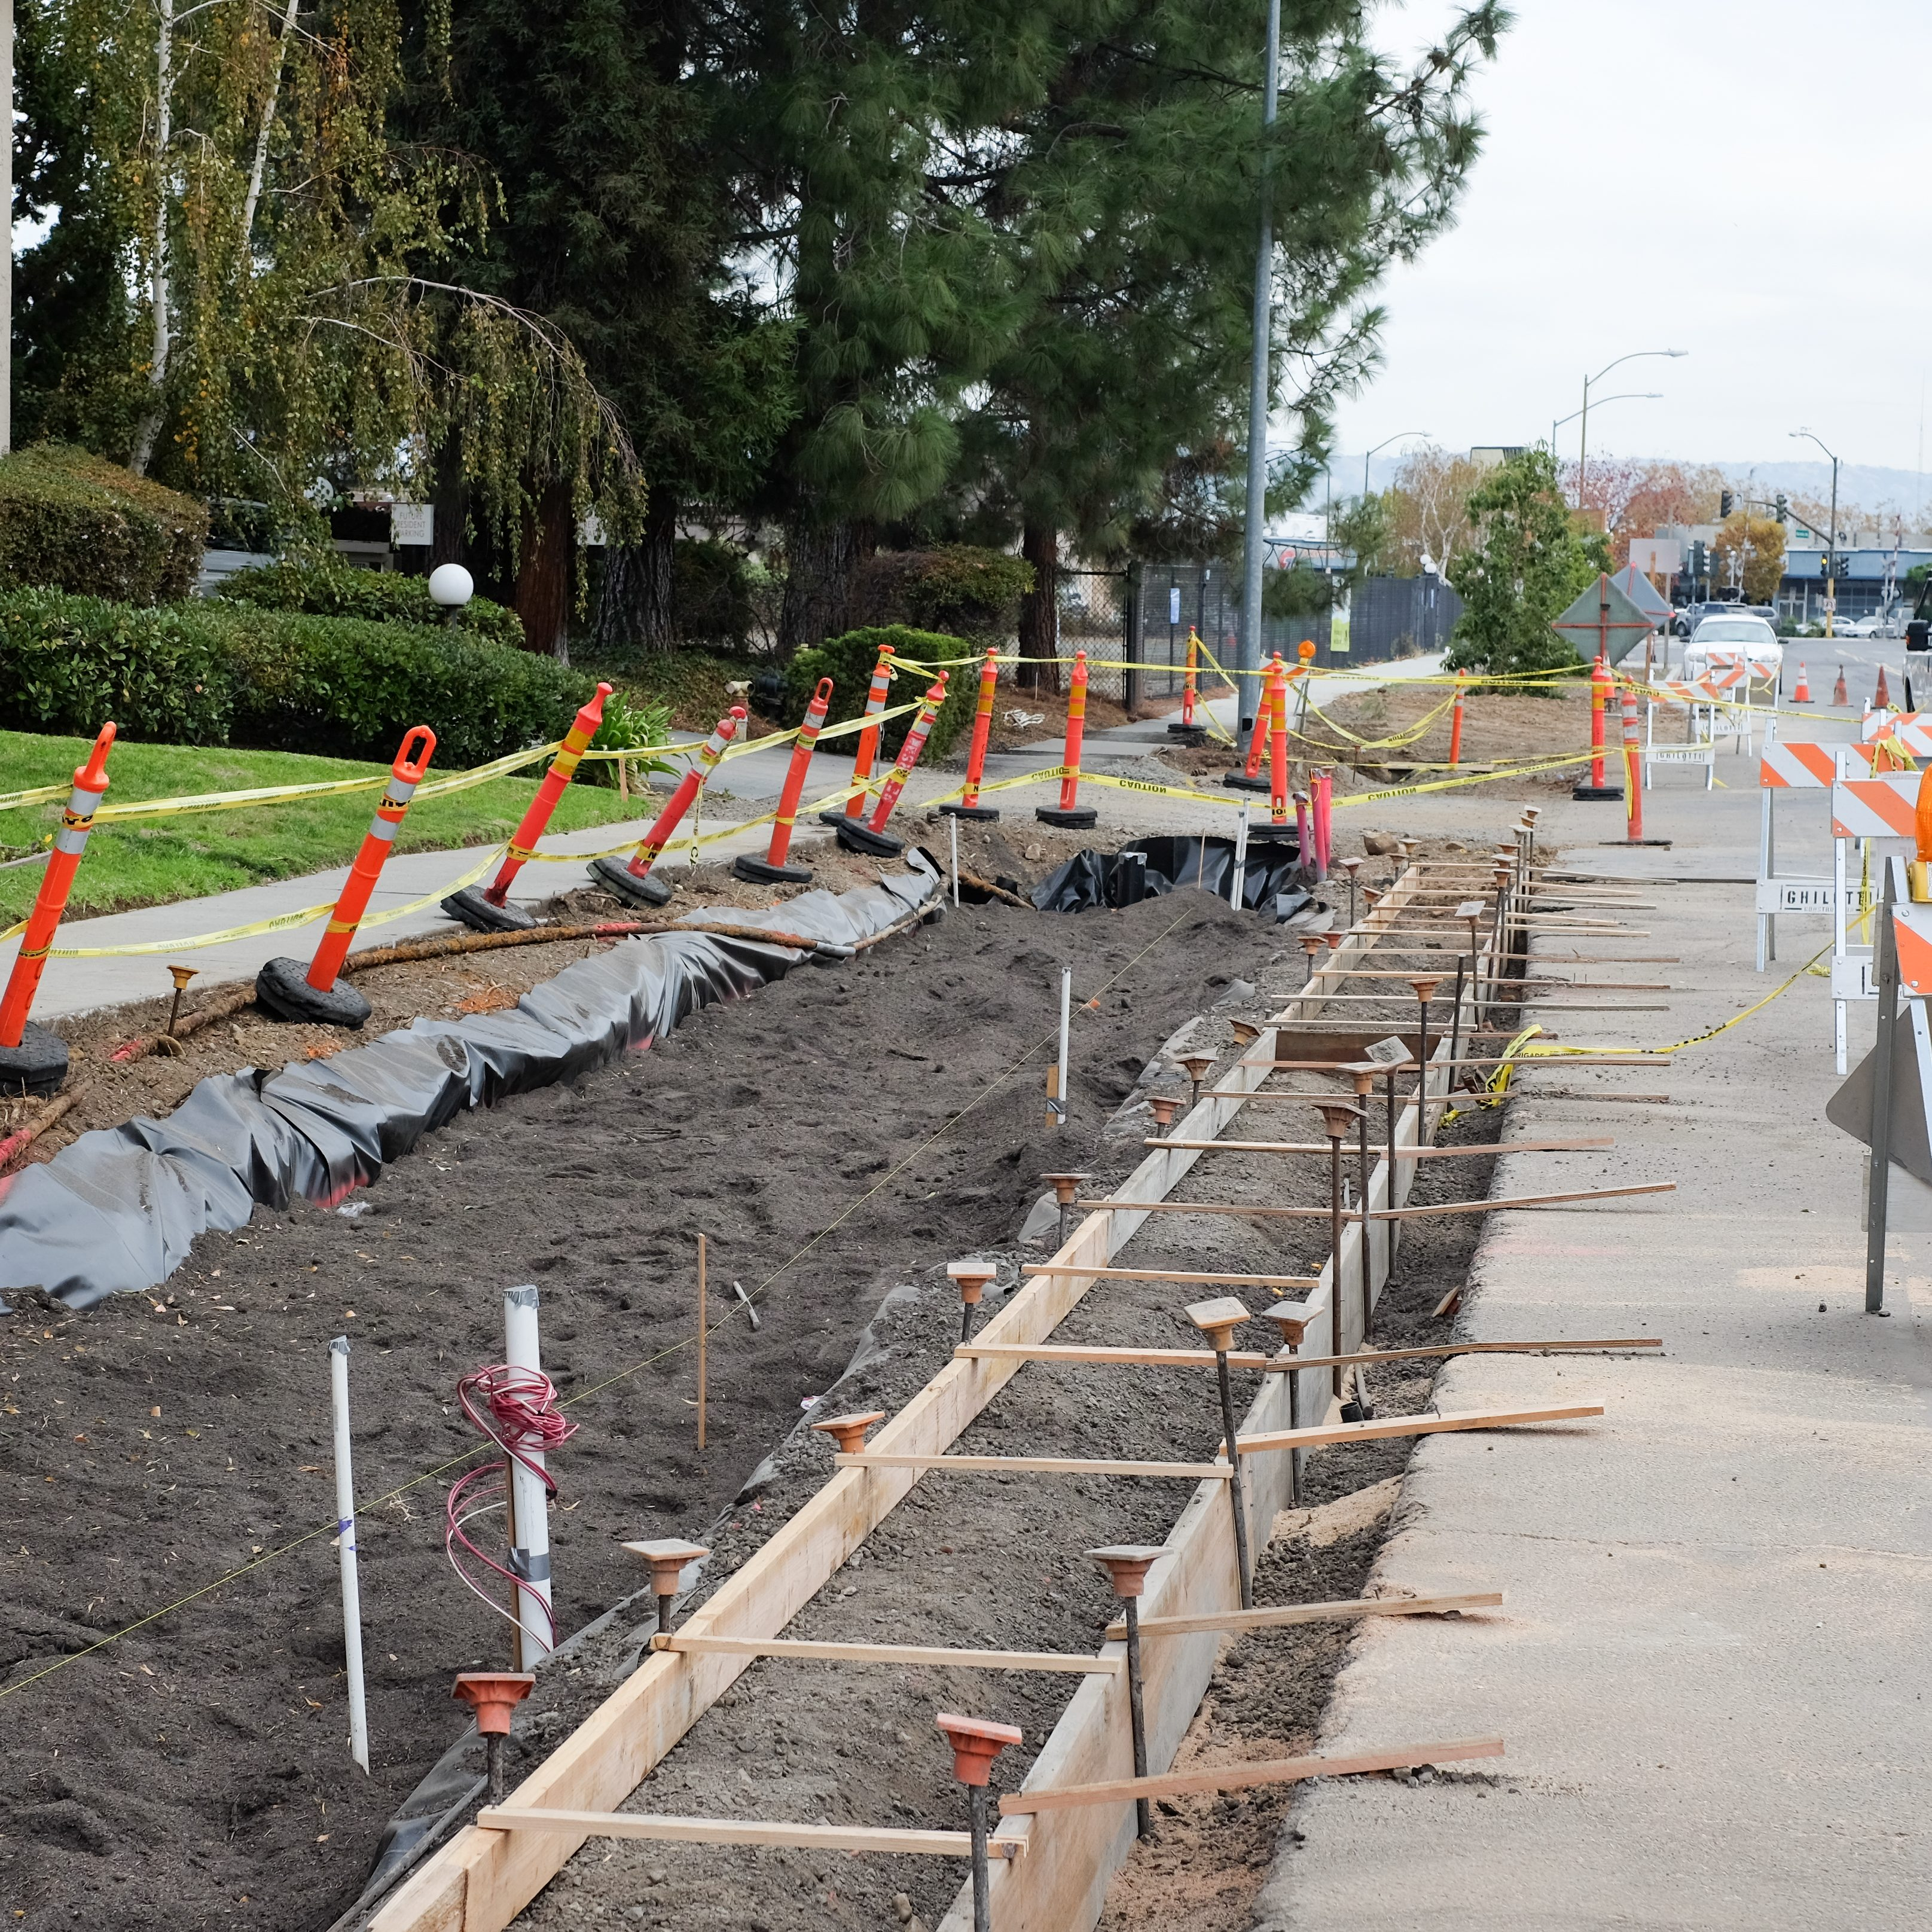 Construction of an urban greening project